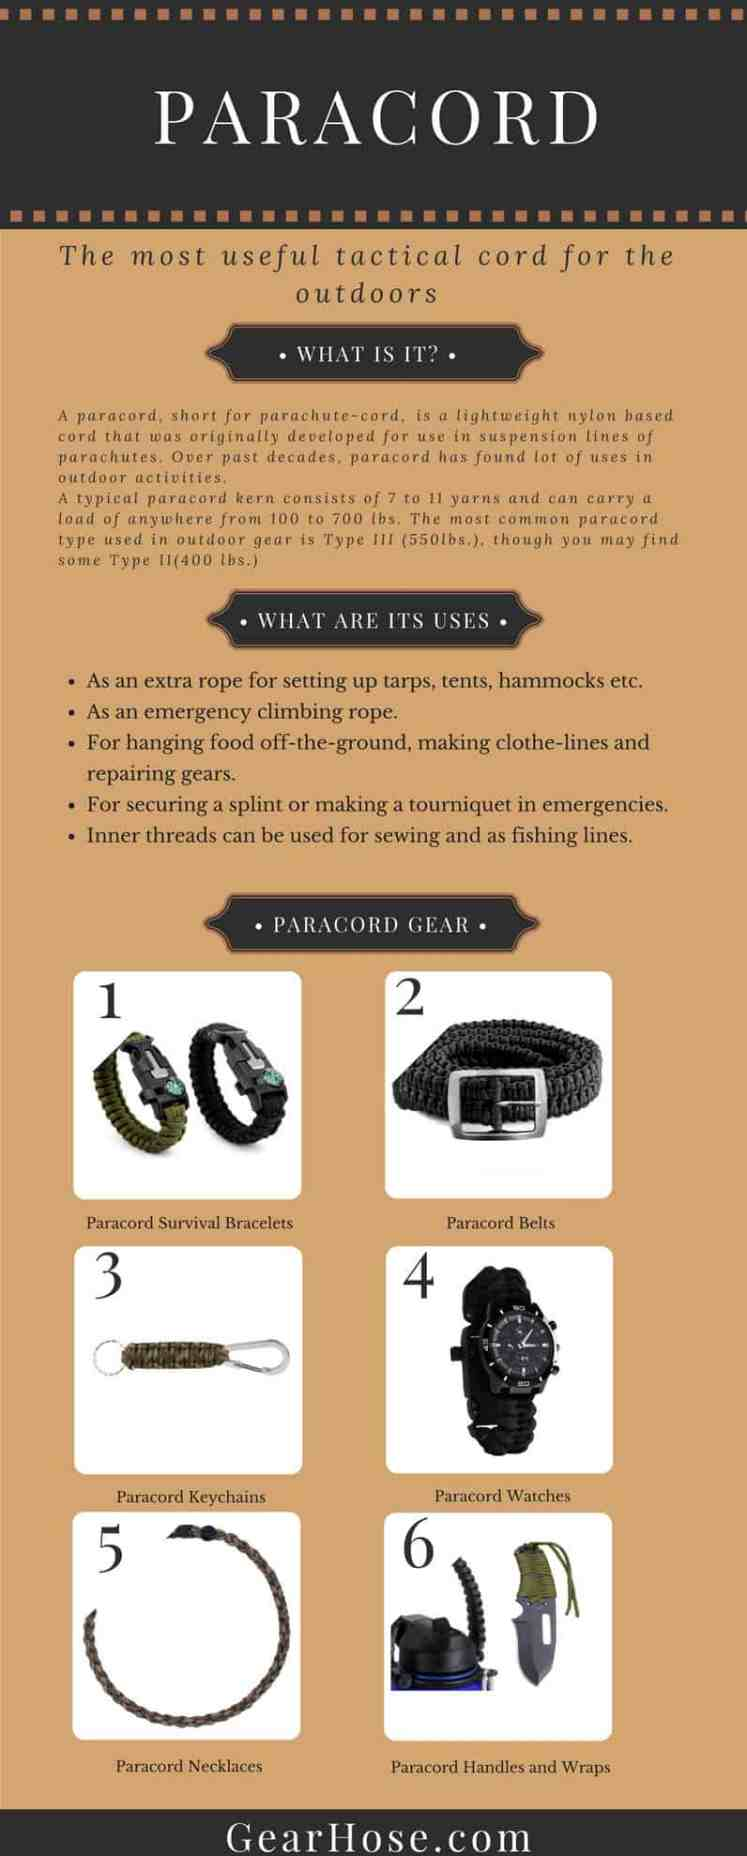 What is a paracord and its uses